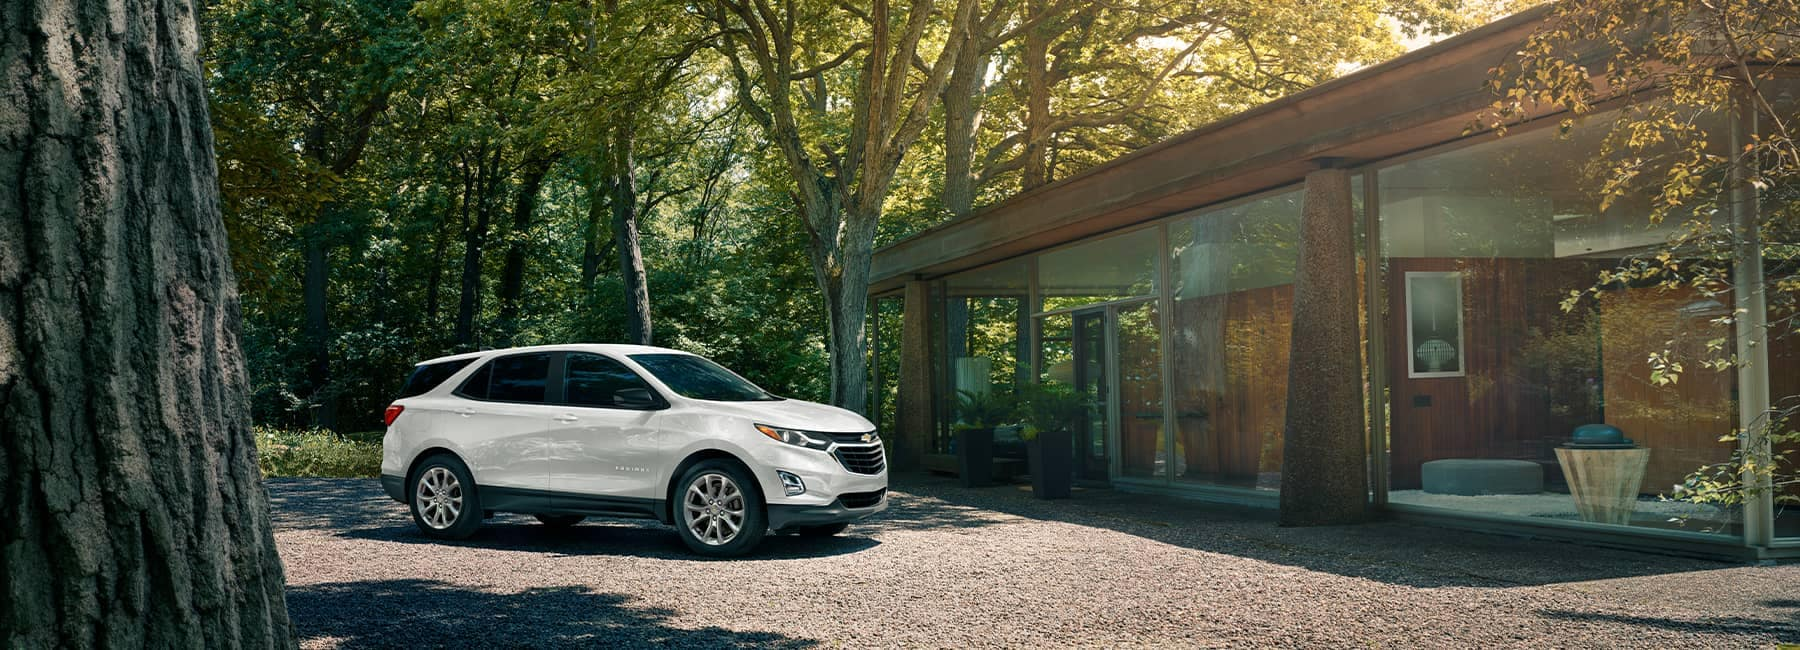 A White 2021 Chevrolet Equinox parked in front of a modern house tucked in the woods